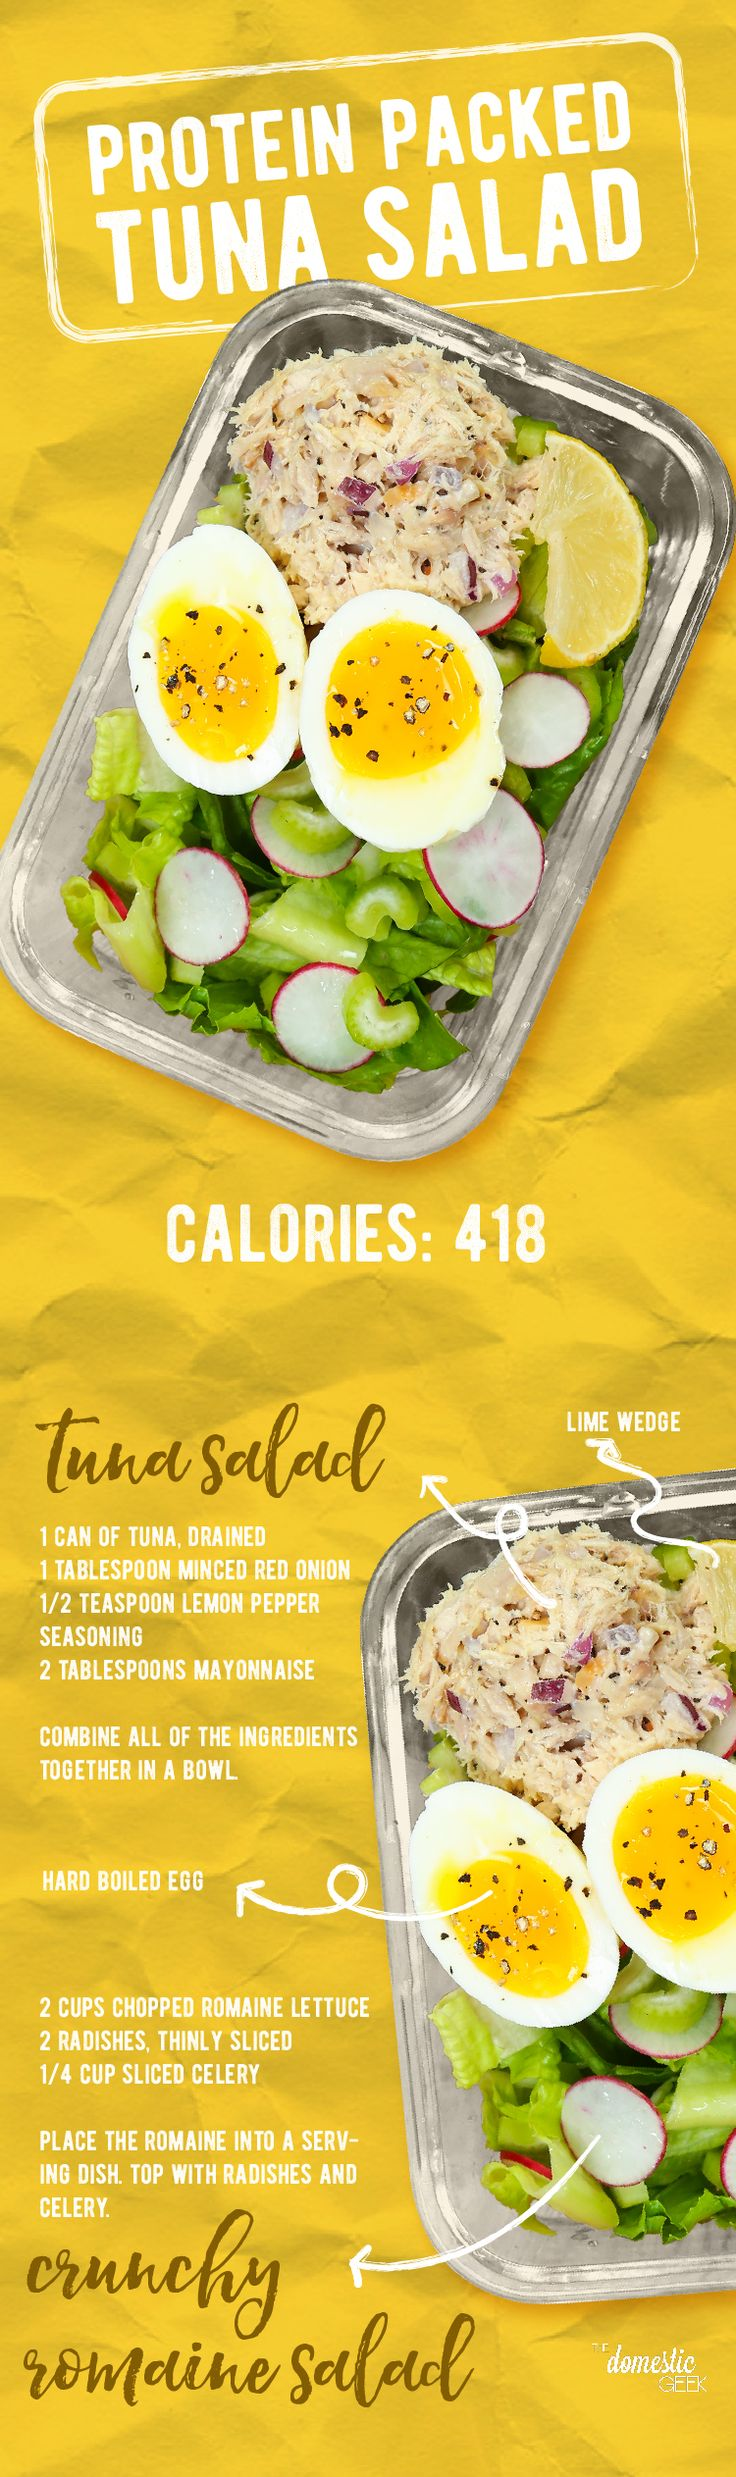 Protein Packed Tuna Salad Box! Do this without the mayo.. instead use avocado or olive oil.